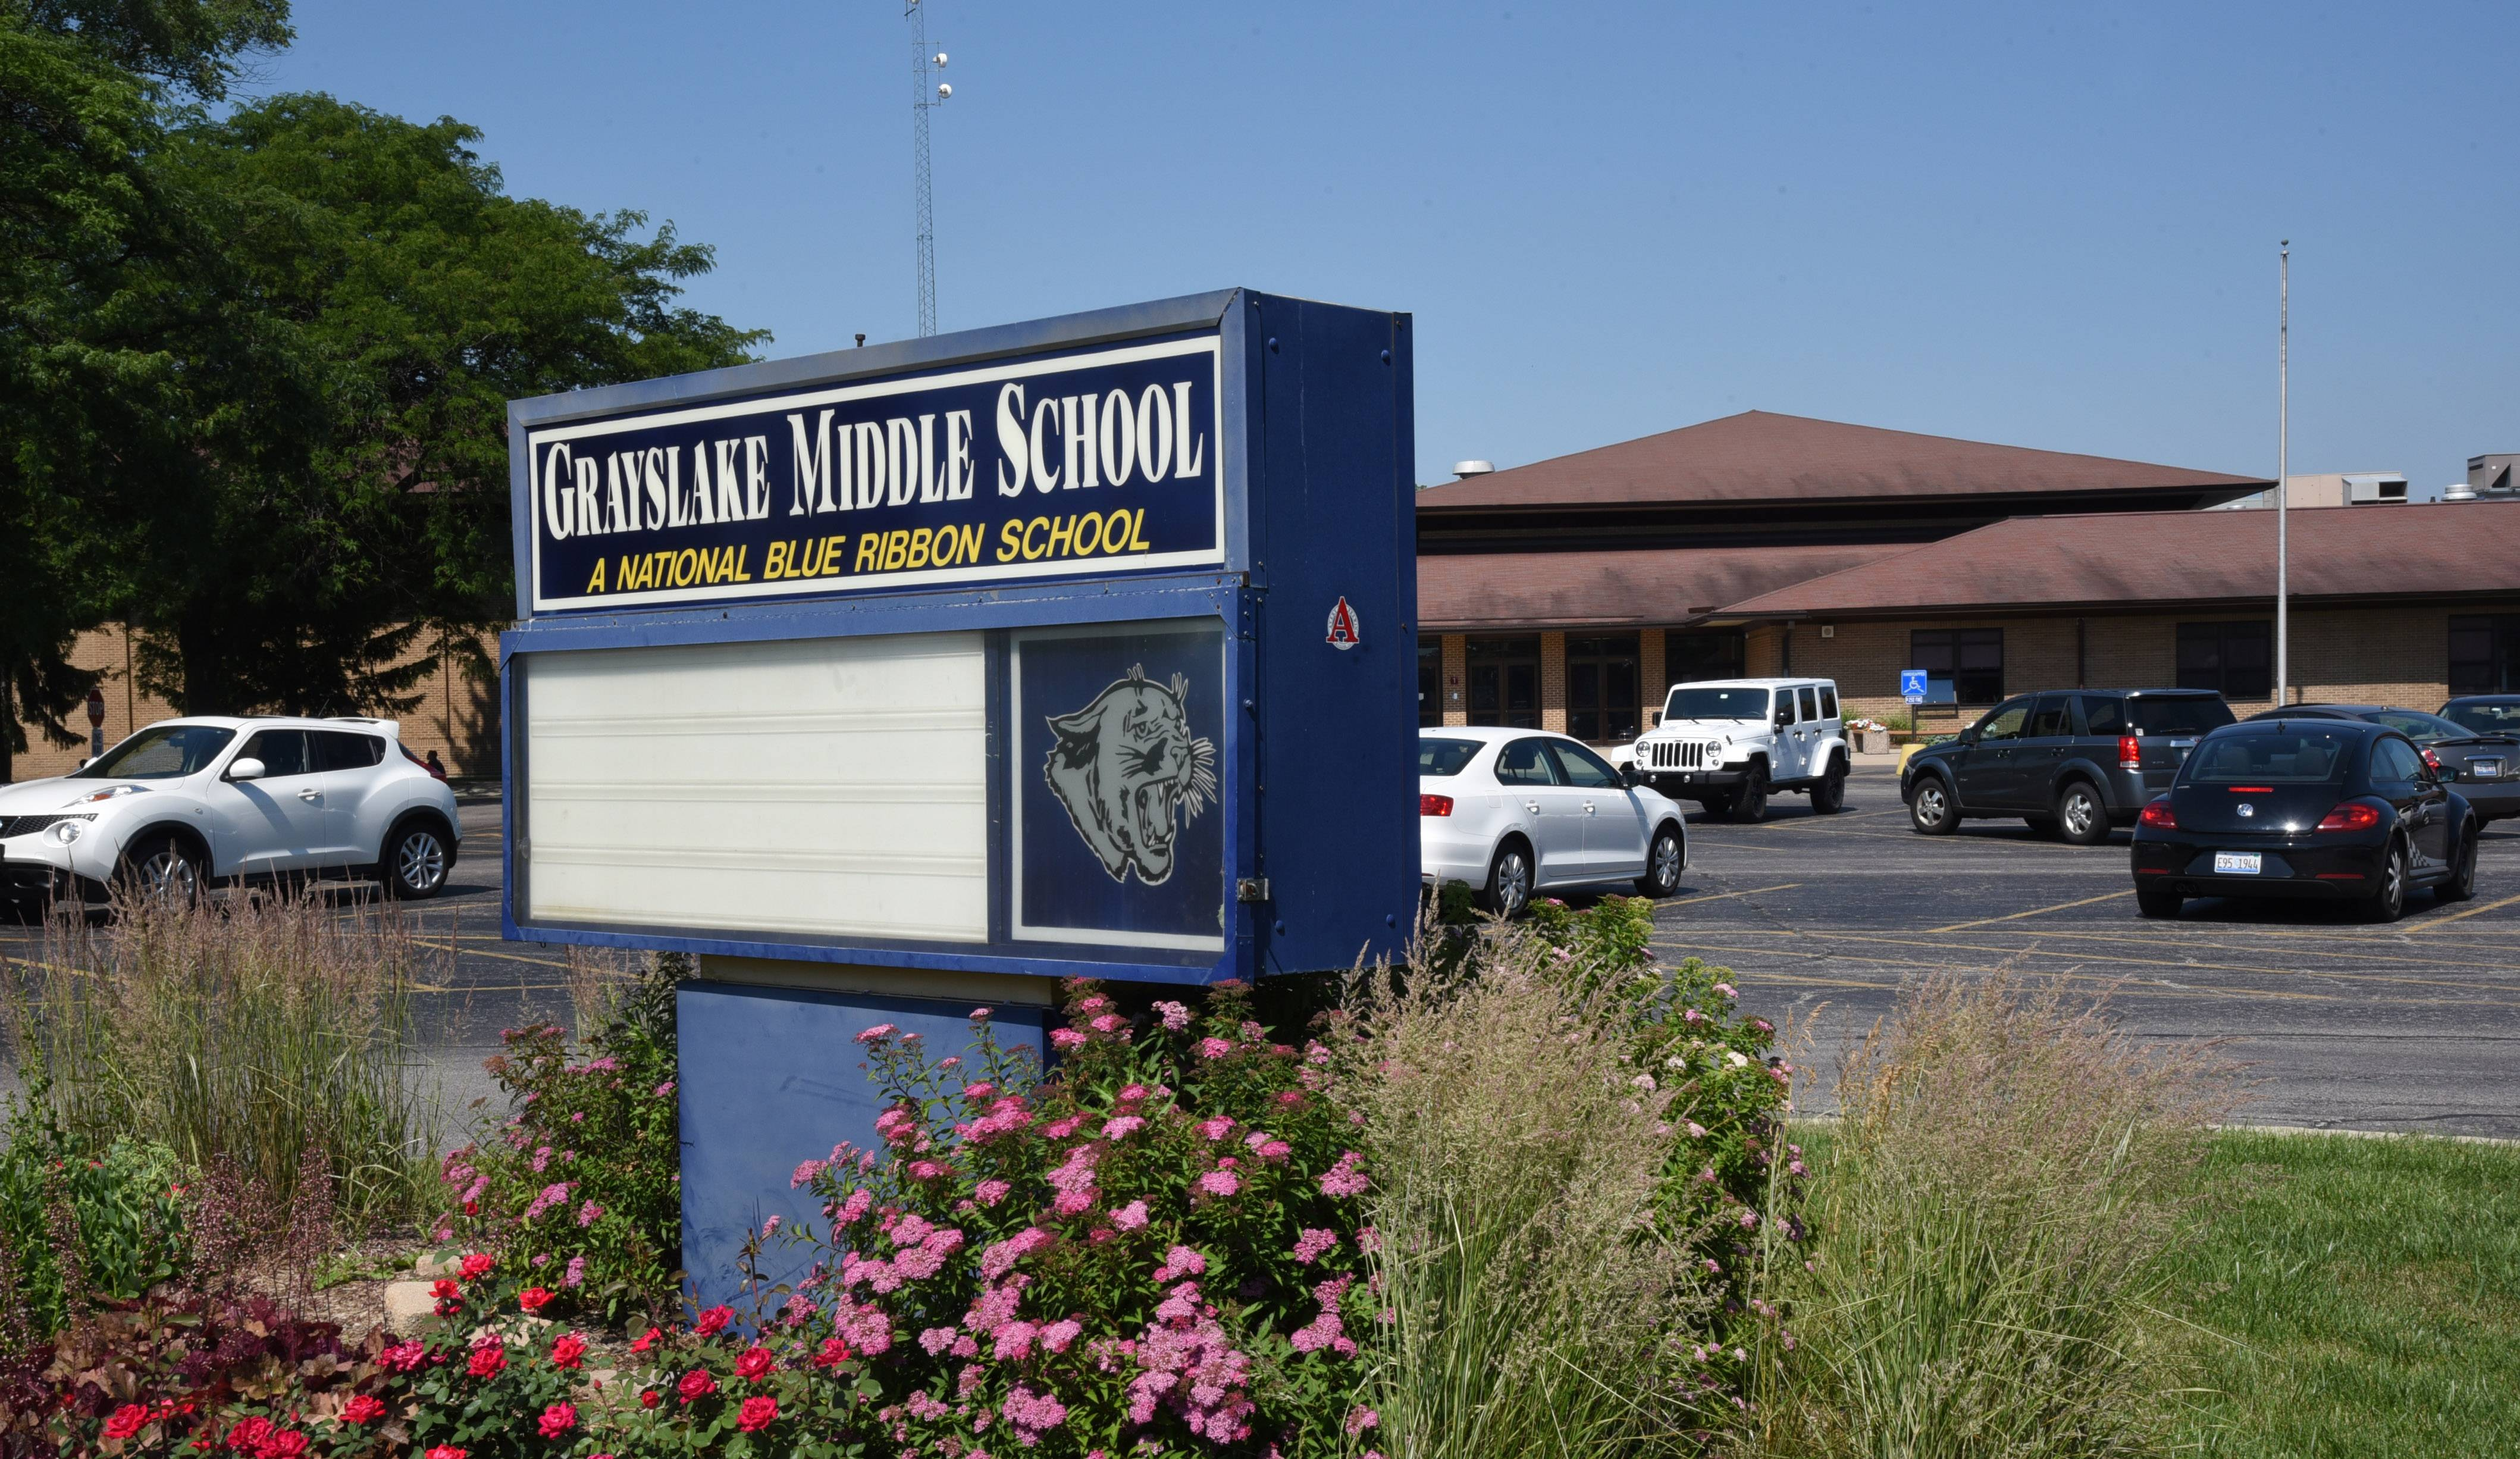 If the school district's plan is approved, solar panels will be installed on the roof of Grayslake Middle School this summer.